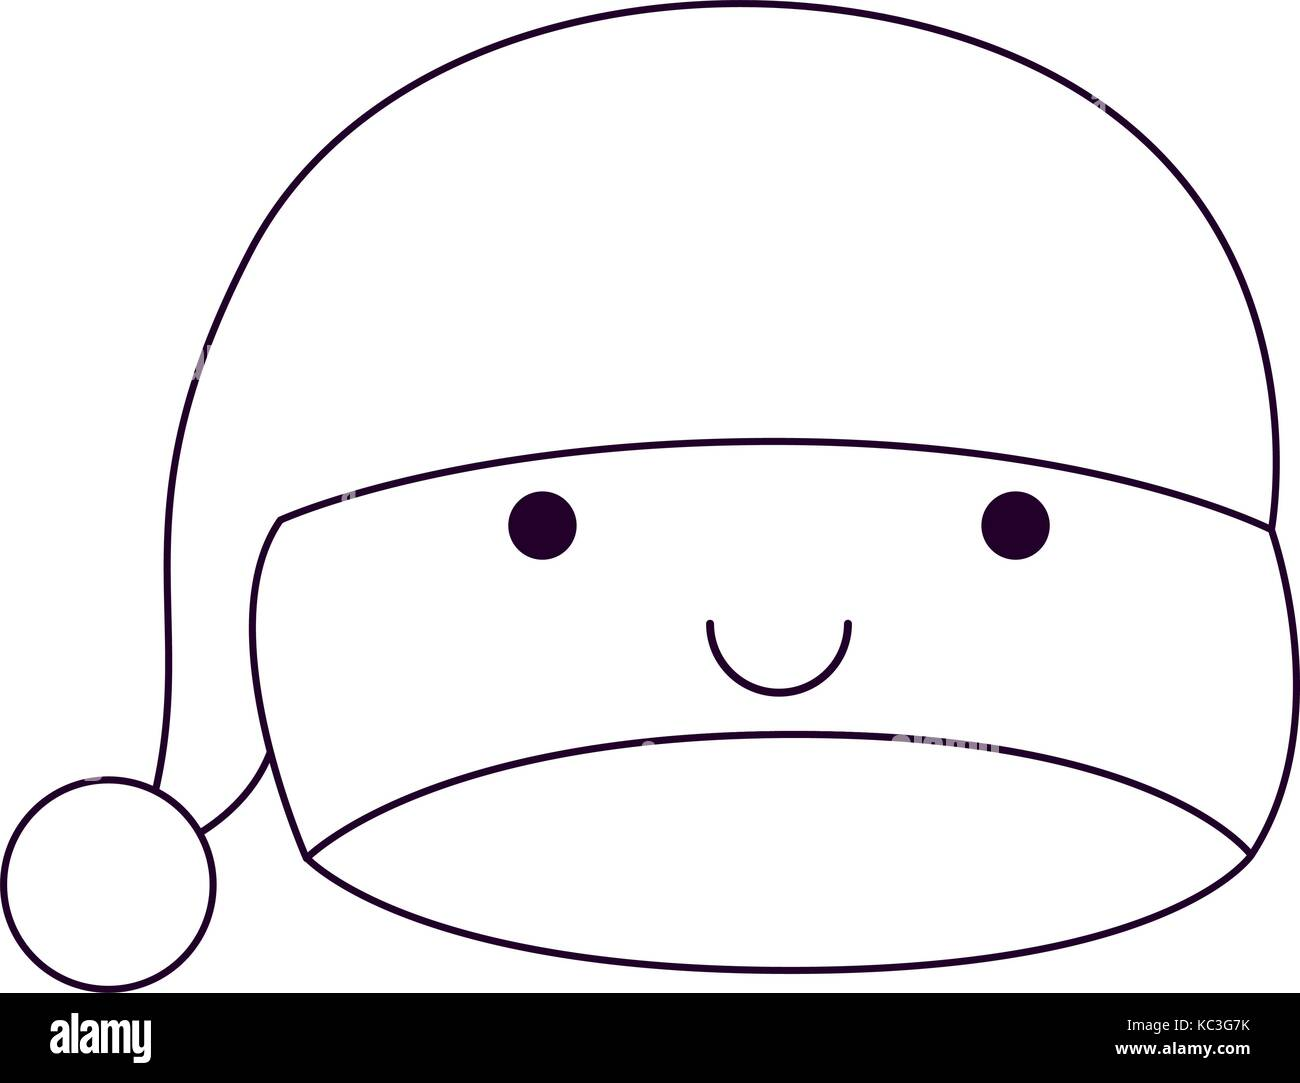 44c04bd5e0664 kawaii christmas hat santa claus happiness expression silhouette on white  background - Stock Image